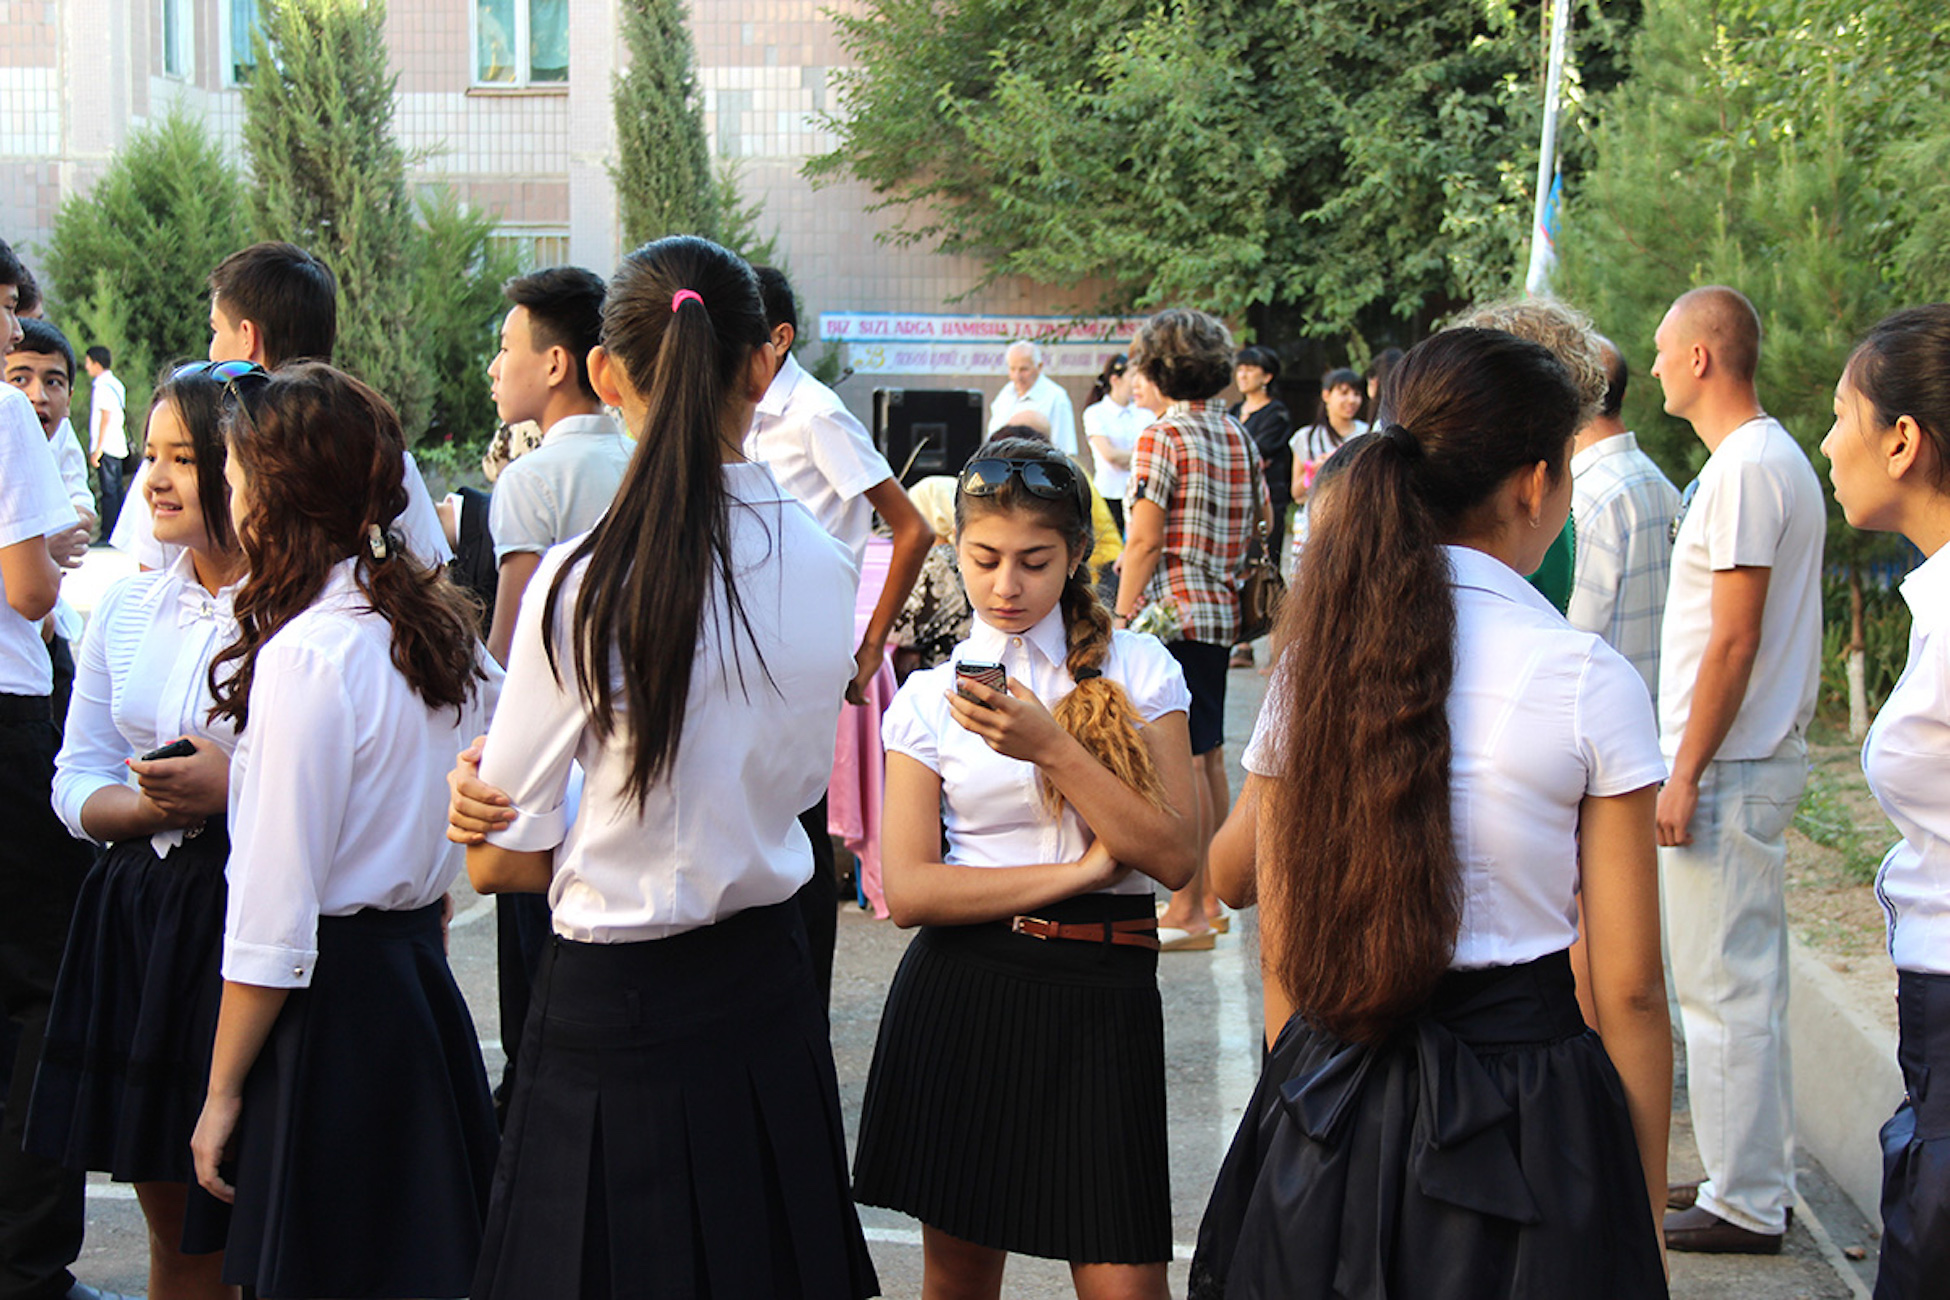 Truancy seen as potential inroad for extremism in Uzbekistan